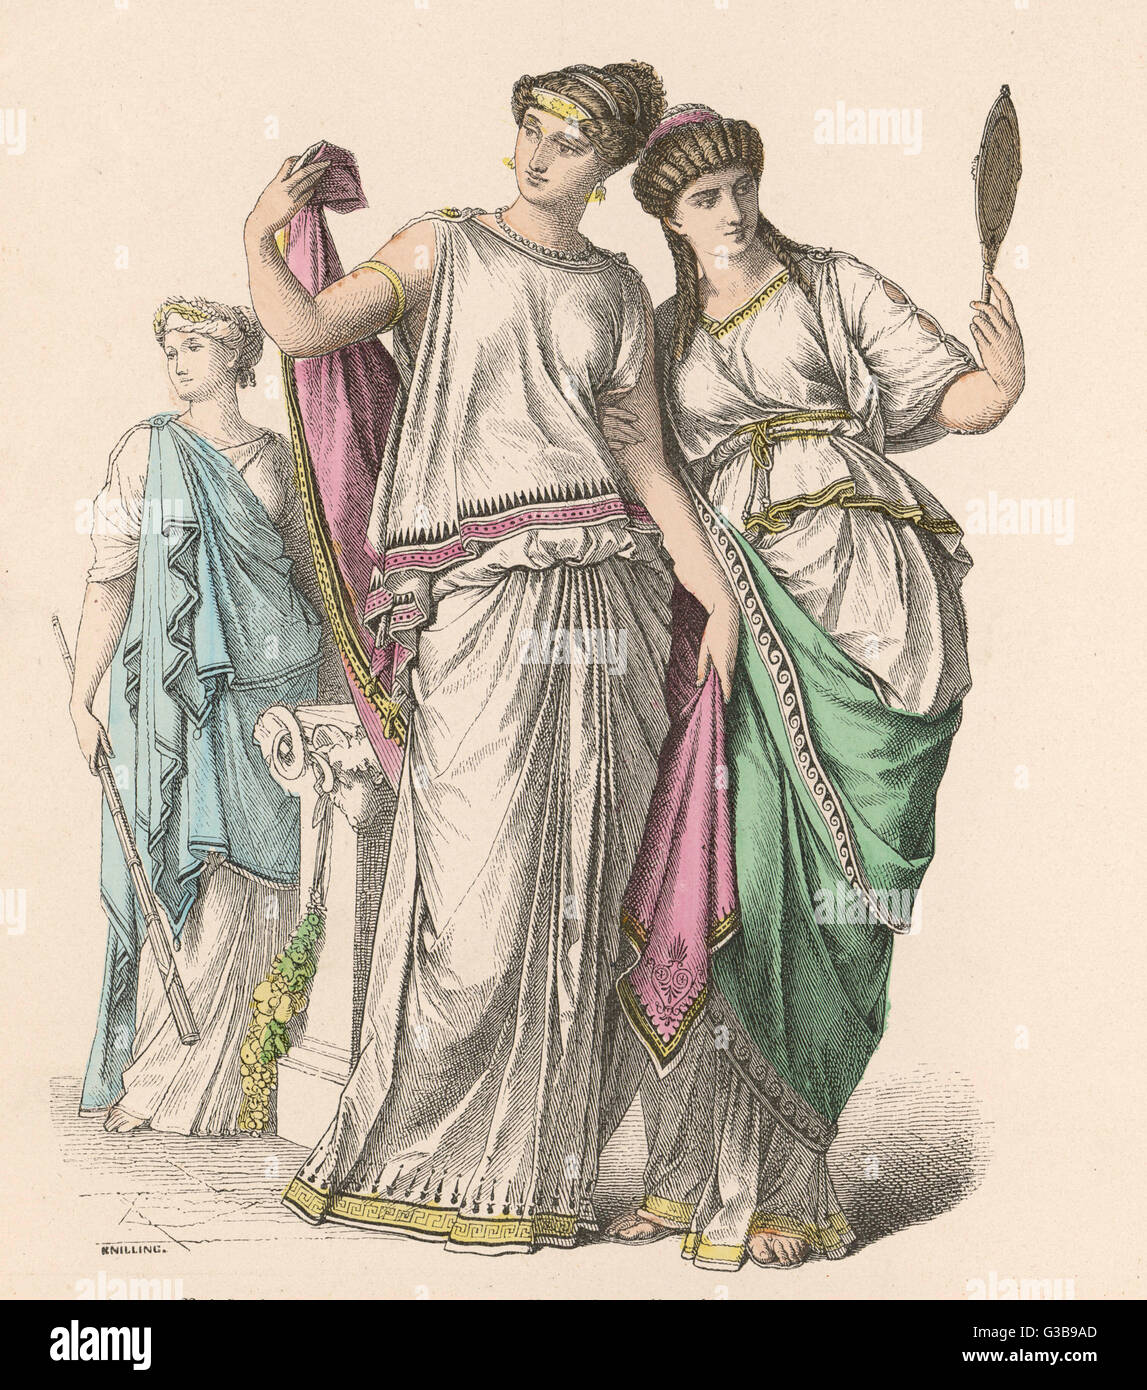 Three Greek women -  the one on the left is a priestess       Date: BC - Stock Image